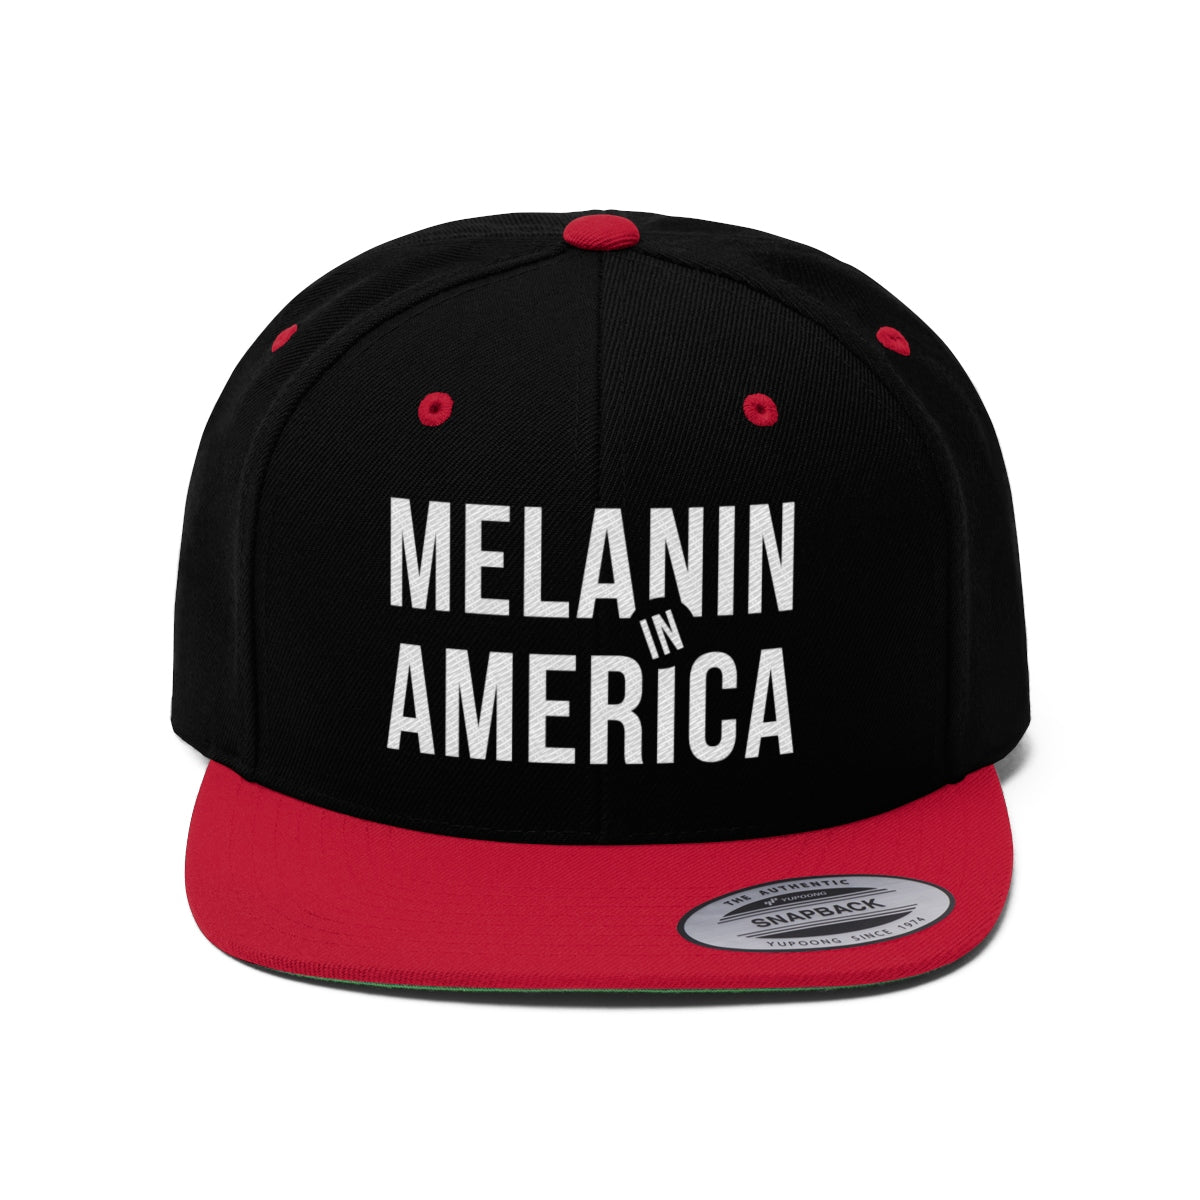 Melanin in America Unisex Flat Bill Hat